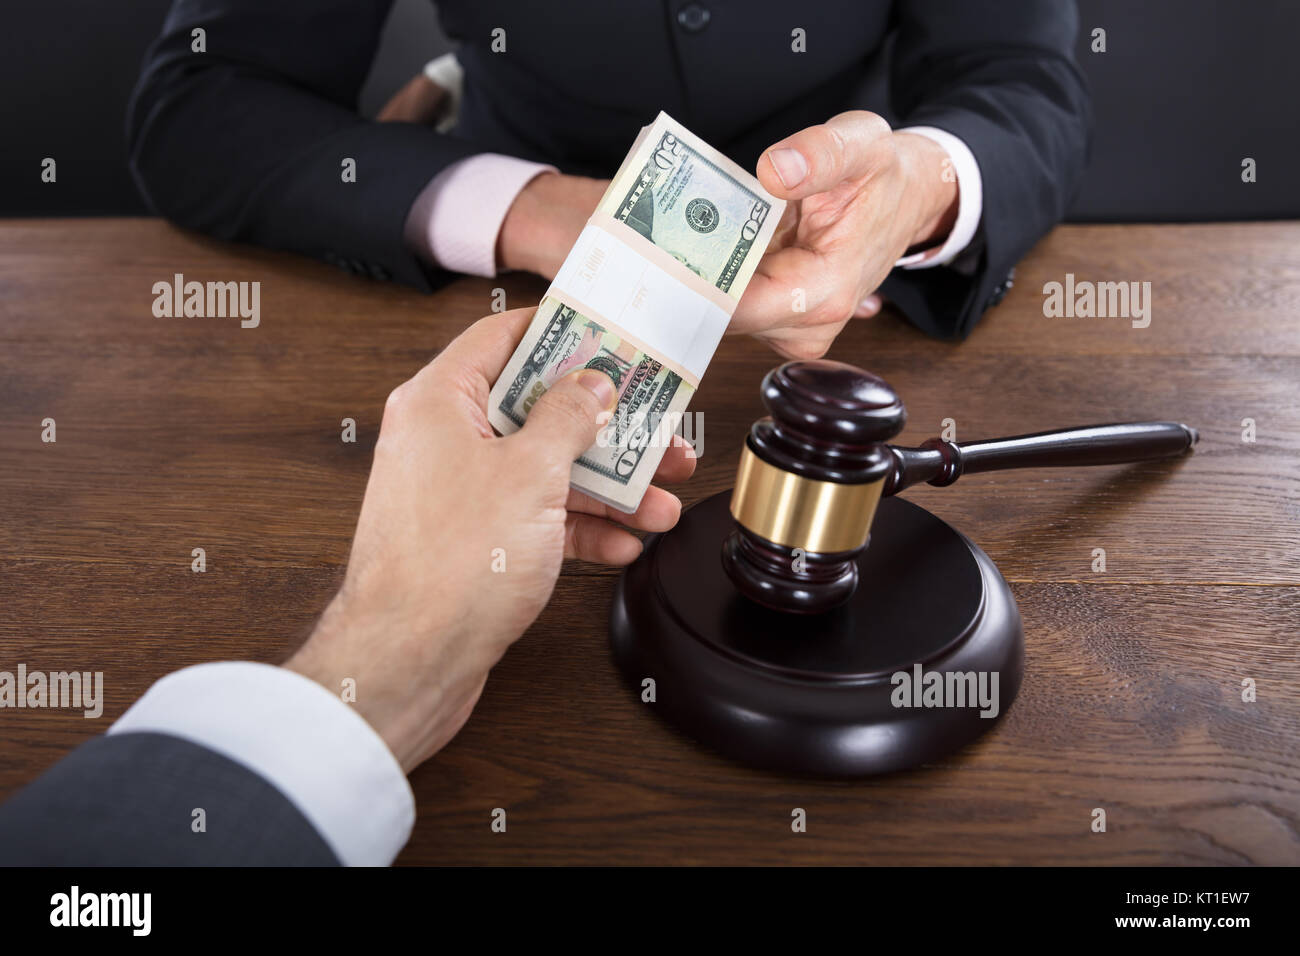 Businessman Giving A Bribe To A Judge - Stock Image